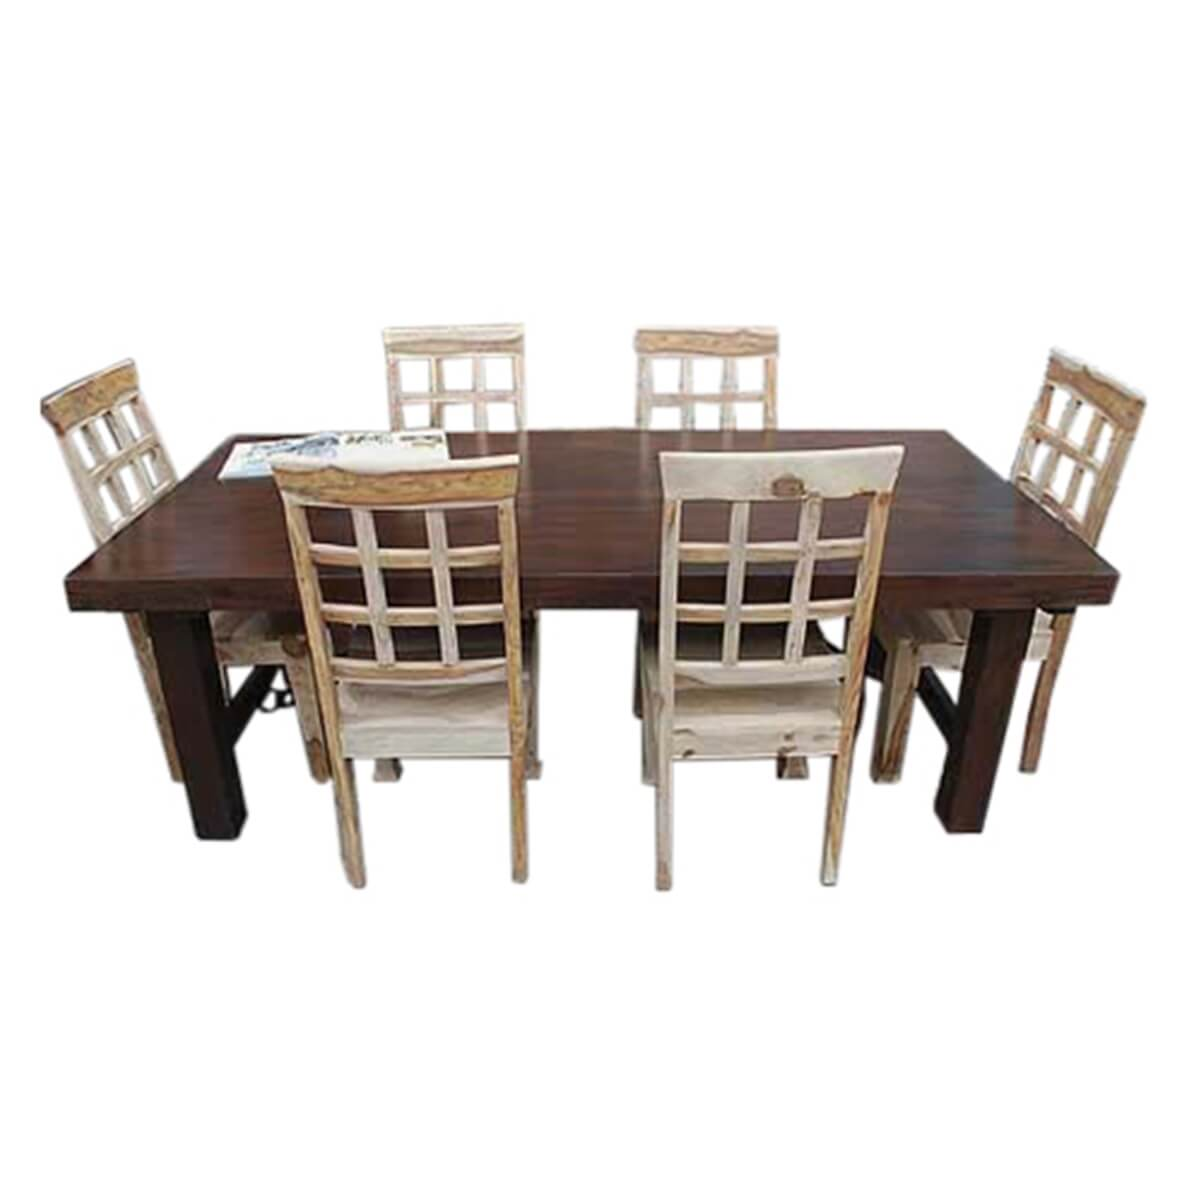 Santa Fe Solid Wood Rustic Dining Table and Chair Set For  : 13292 from www.sierralivingconcepts.com size 1200 x 1200 jpeg 216kB